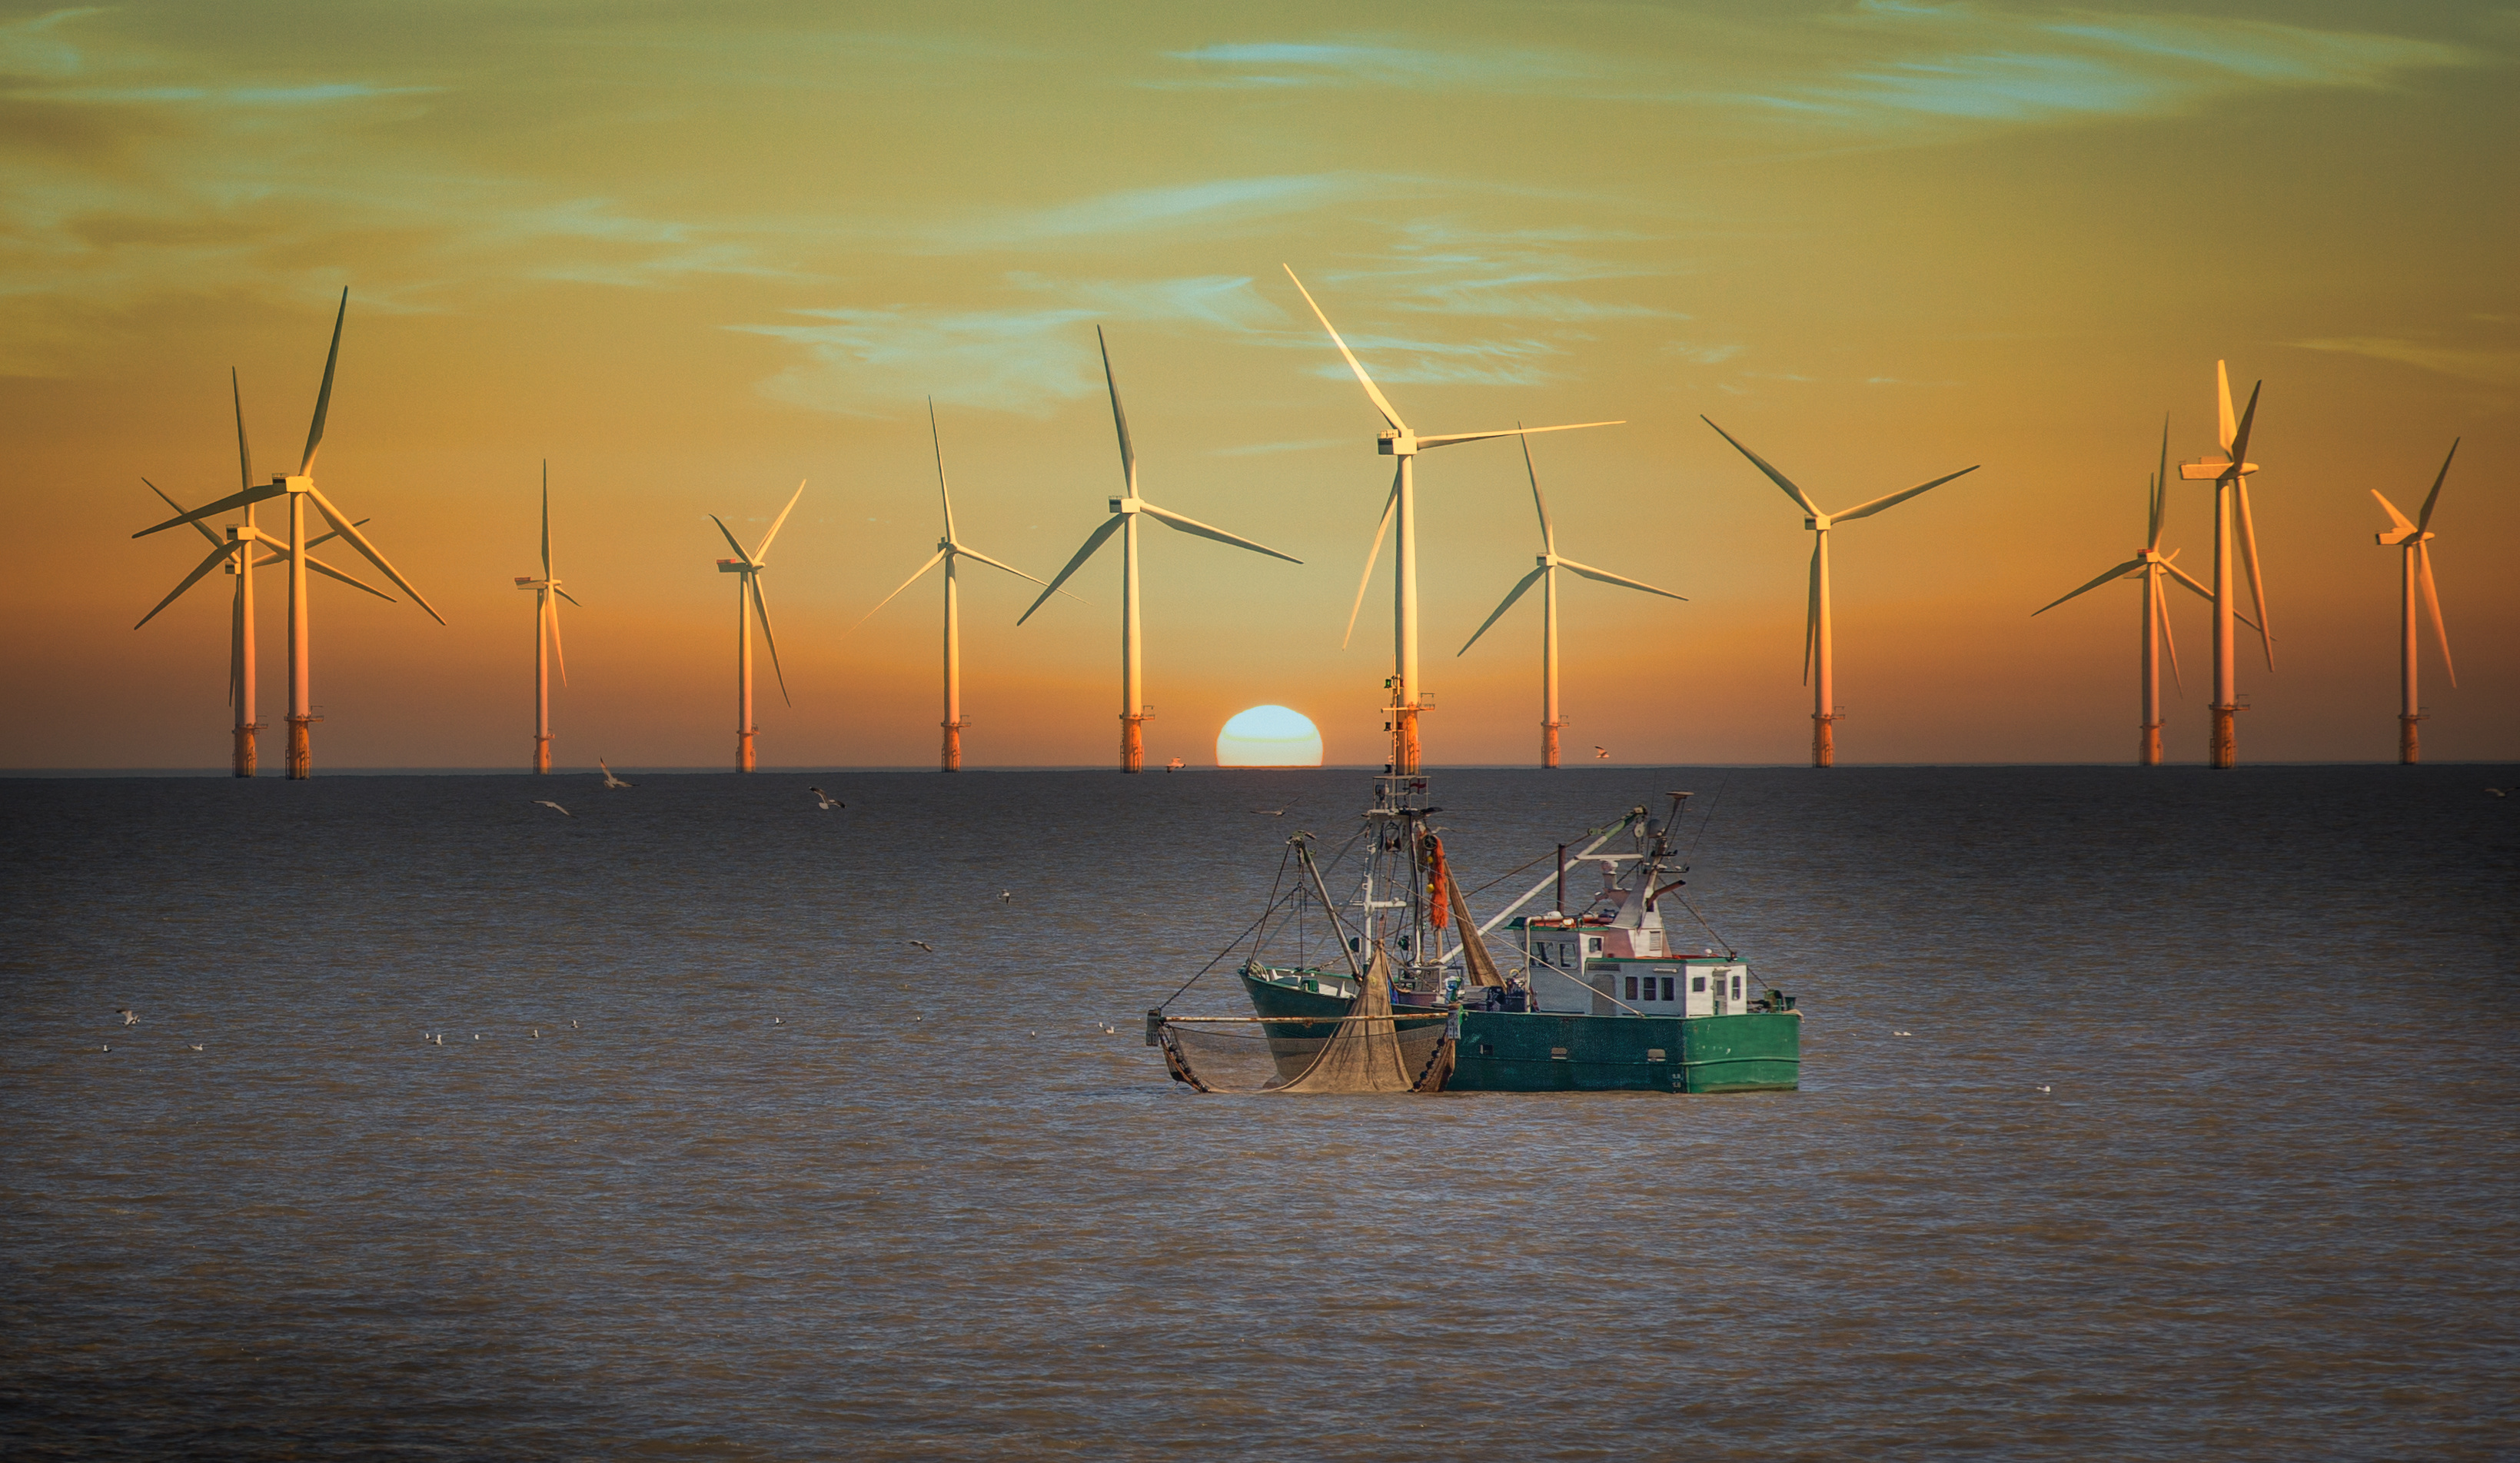 Offshore wind will consolidate the Poland's position on the European investment map / Offshore-Windenergie stärkt die Position Polens im Investitionsfahrplan für Europa